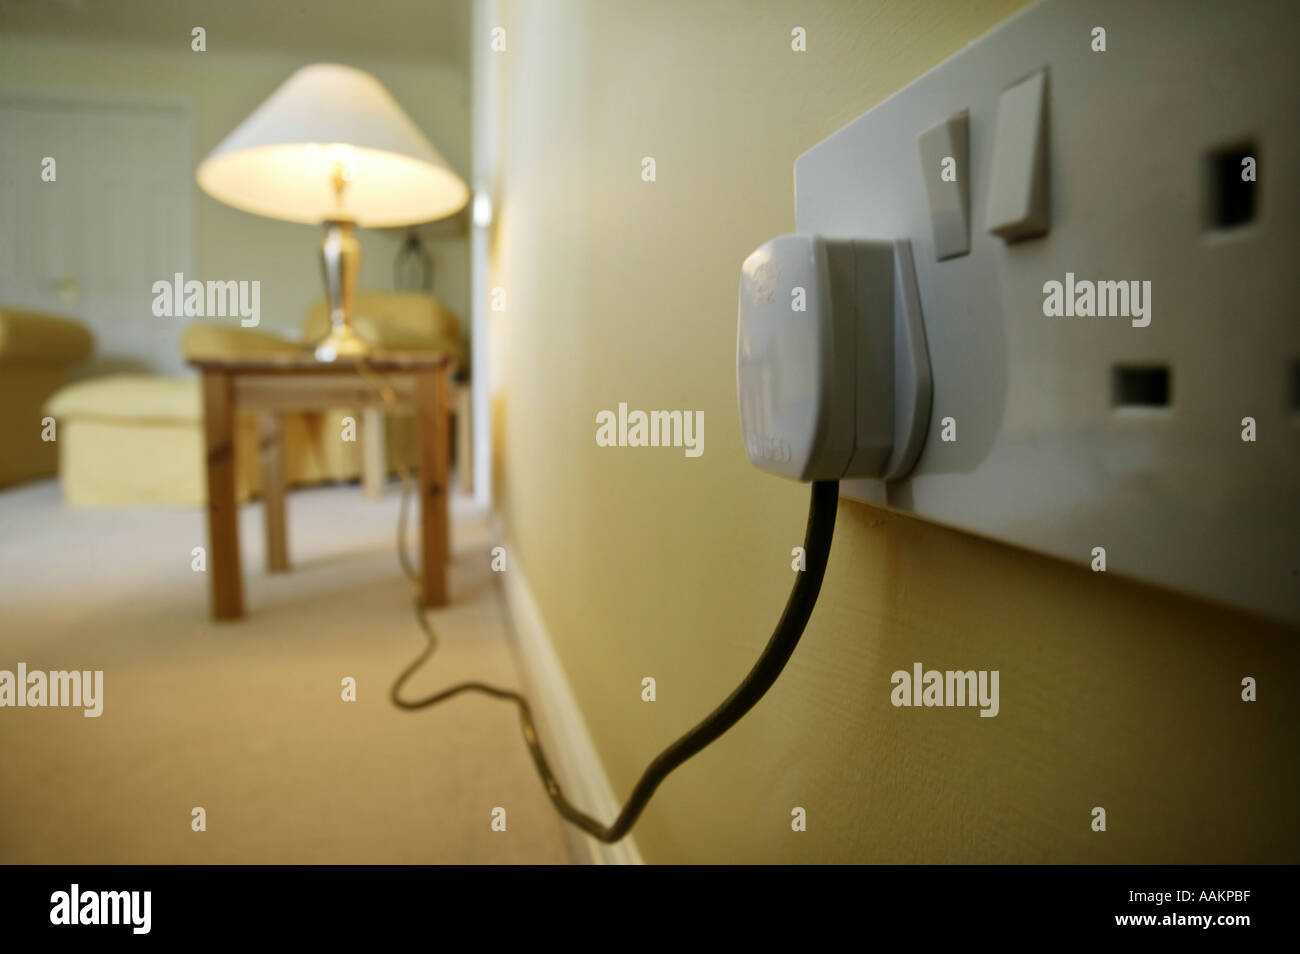 Wall Lamps That Plug Into A Socket : A table lamp plugged into a wall socket in the UK Stock Photo, Royalty Free Image: 4131518 - Alamy